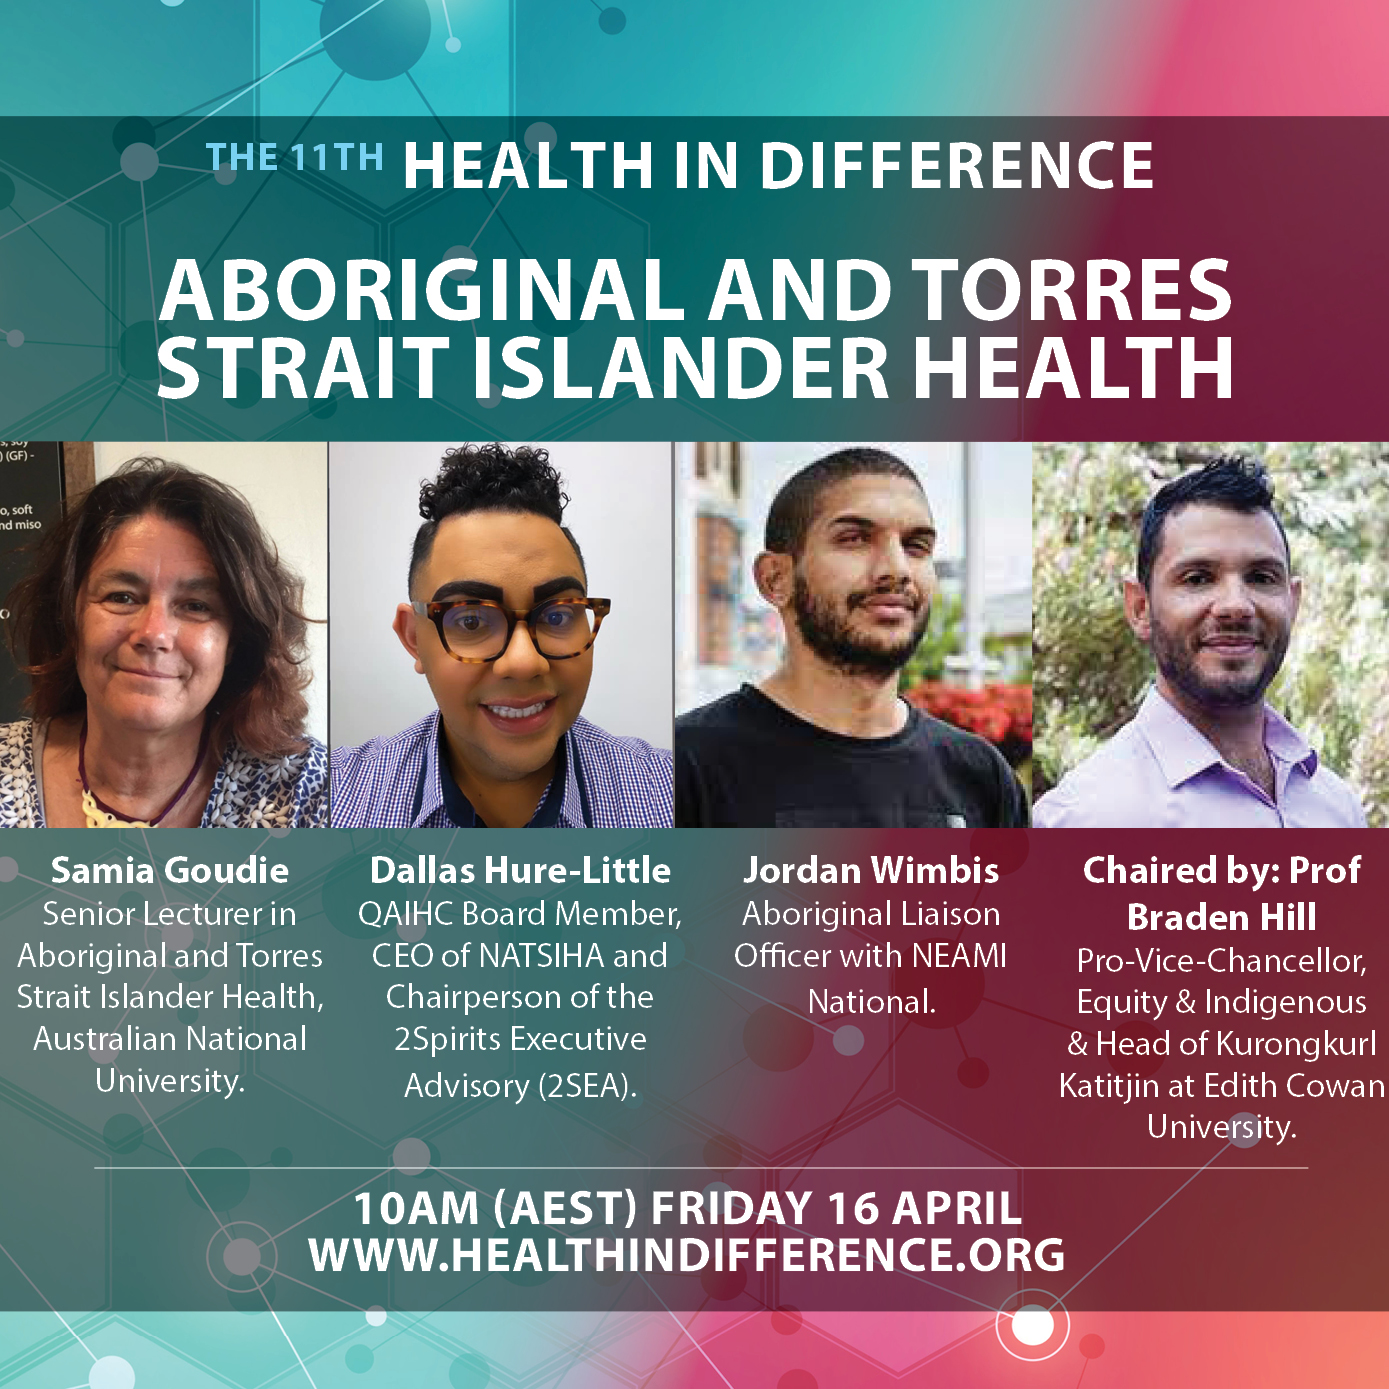 Aboriginal & Torres Strait Islander Health Panel Speakers in moderated discussion. 40 mins Panellists, 20 mins live Q&A. Panelists: Samia Goudie, Senior Lecturer in Aboriginal and Torres Strait Islander Health, Australian National University, Dallas Hure-Little, Chief Executive Officer of the Northern Aboriginal & Torres Strait Islander Health Alliance (NATSIHA), Jordan Wimbis, Aboriginal Liaison Officer at Neami National STEP and has a long history of community engagement and health promotion. Chaired by: Professor Braden Hill, Pro-Vice-Chancellor, Equity and Indigenous and Head of Kurongkurl Katitjin at Edith Cowan University.